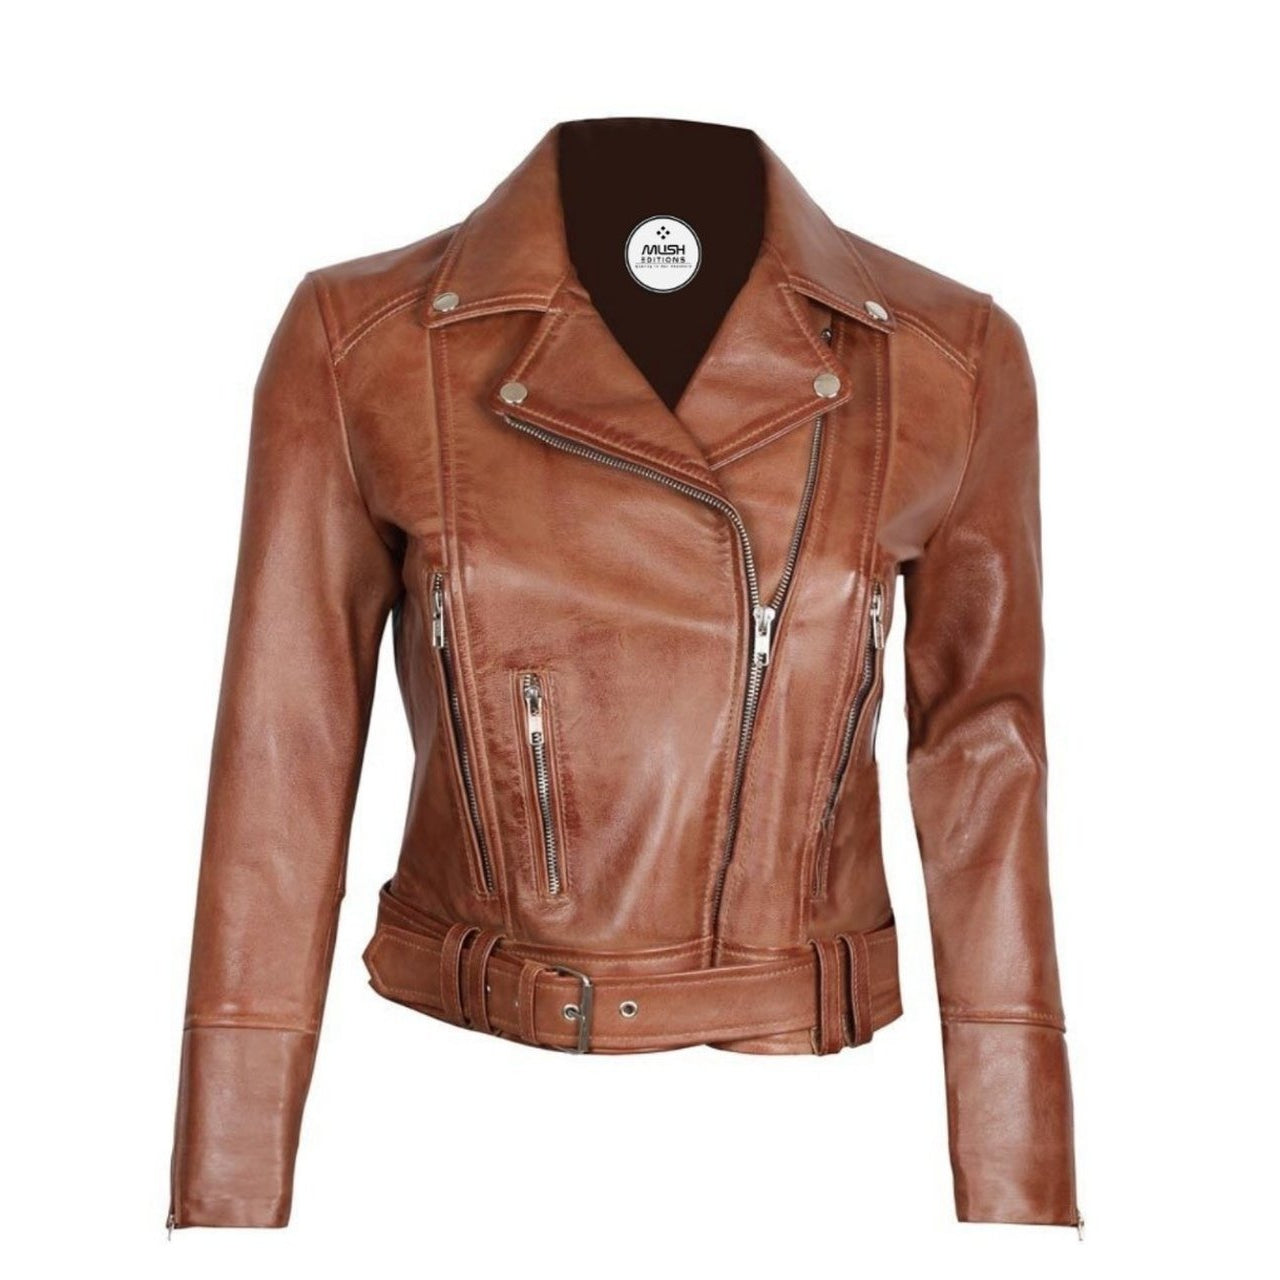 Light Brown Leather Jacket Women - Leather Jacket